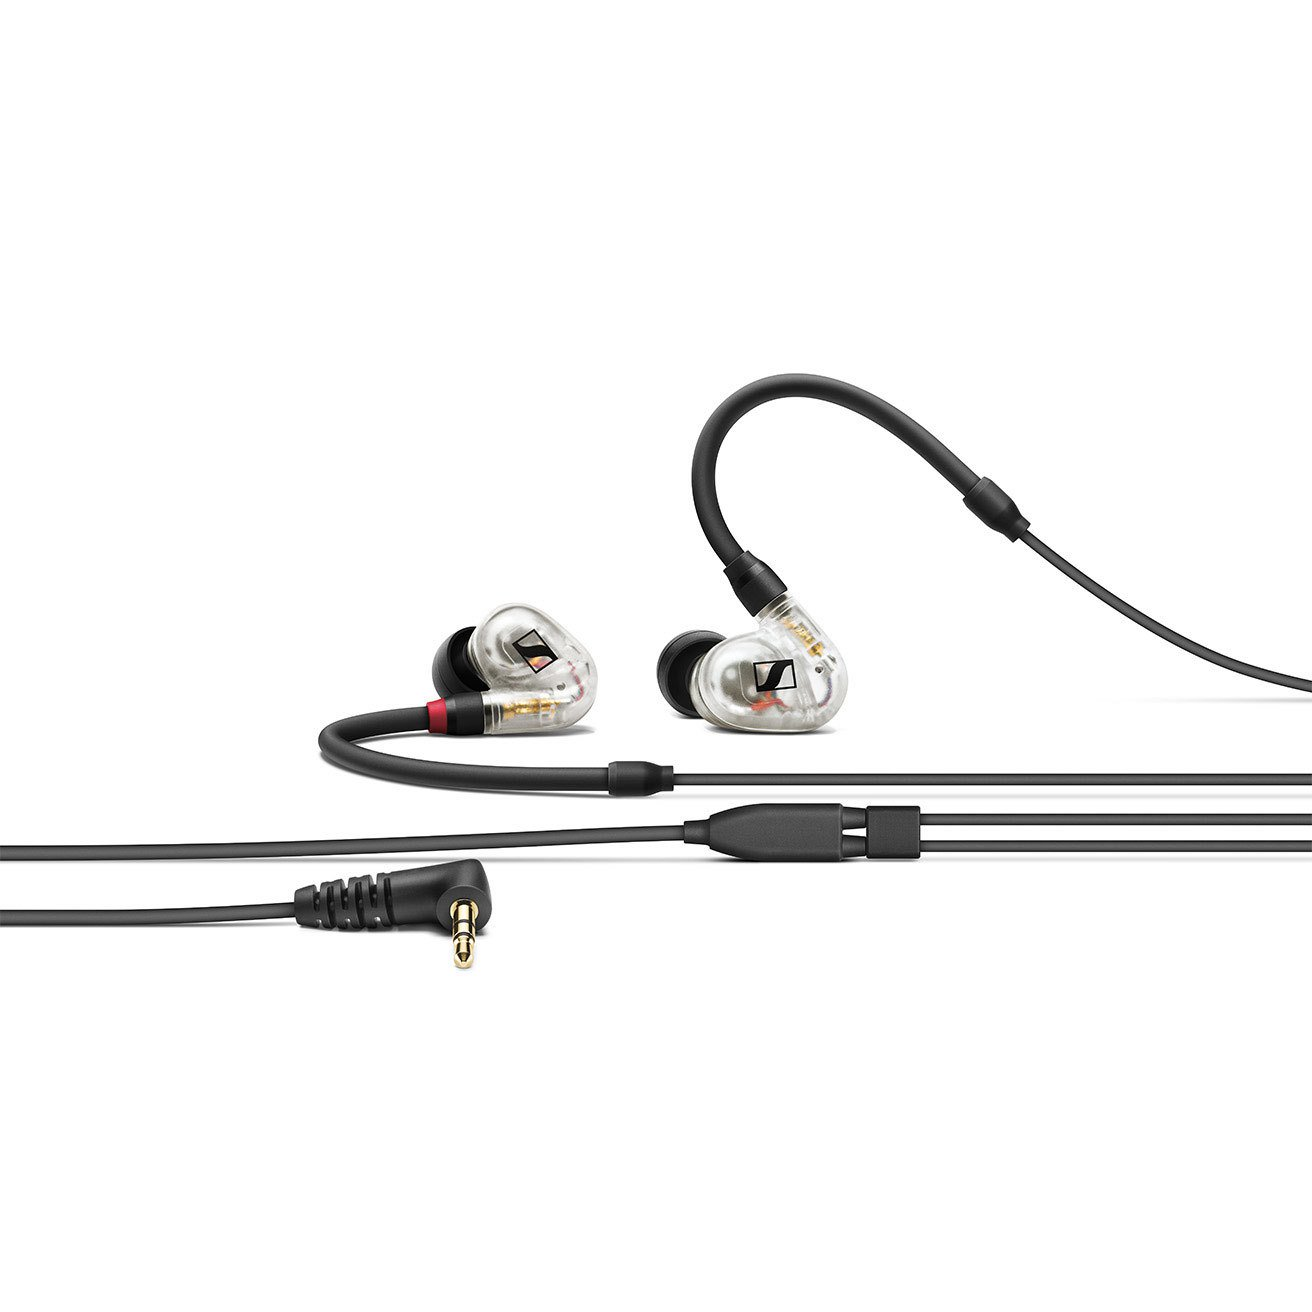 Sennheiser IE 40 earpiece clear